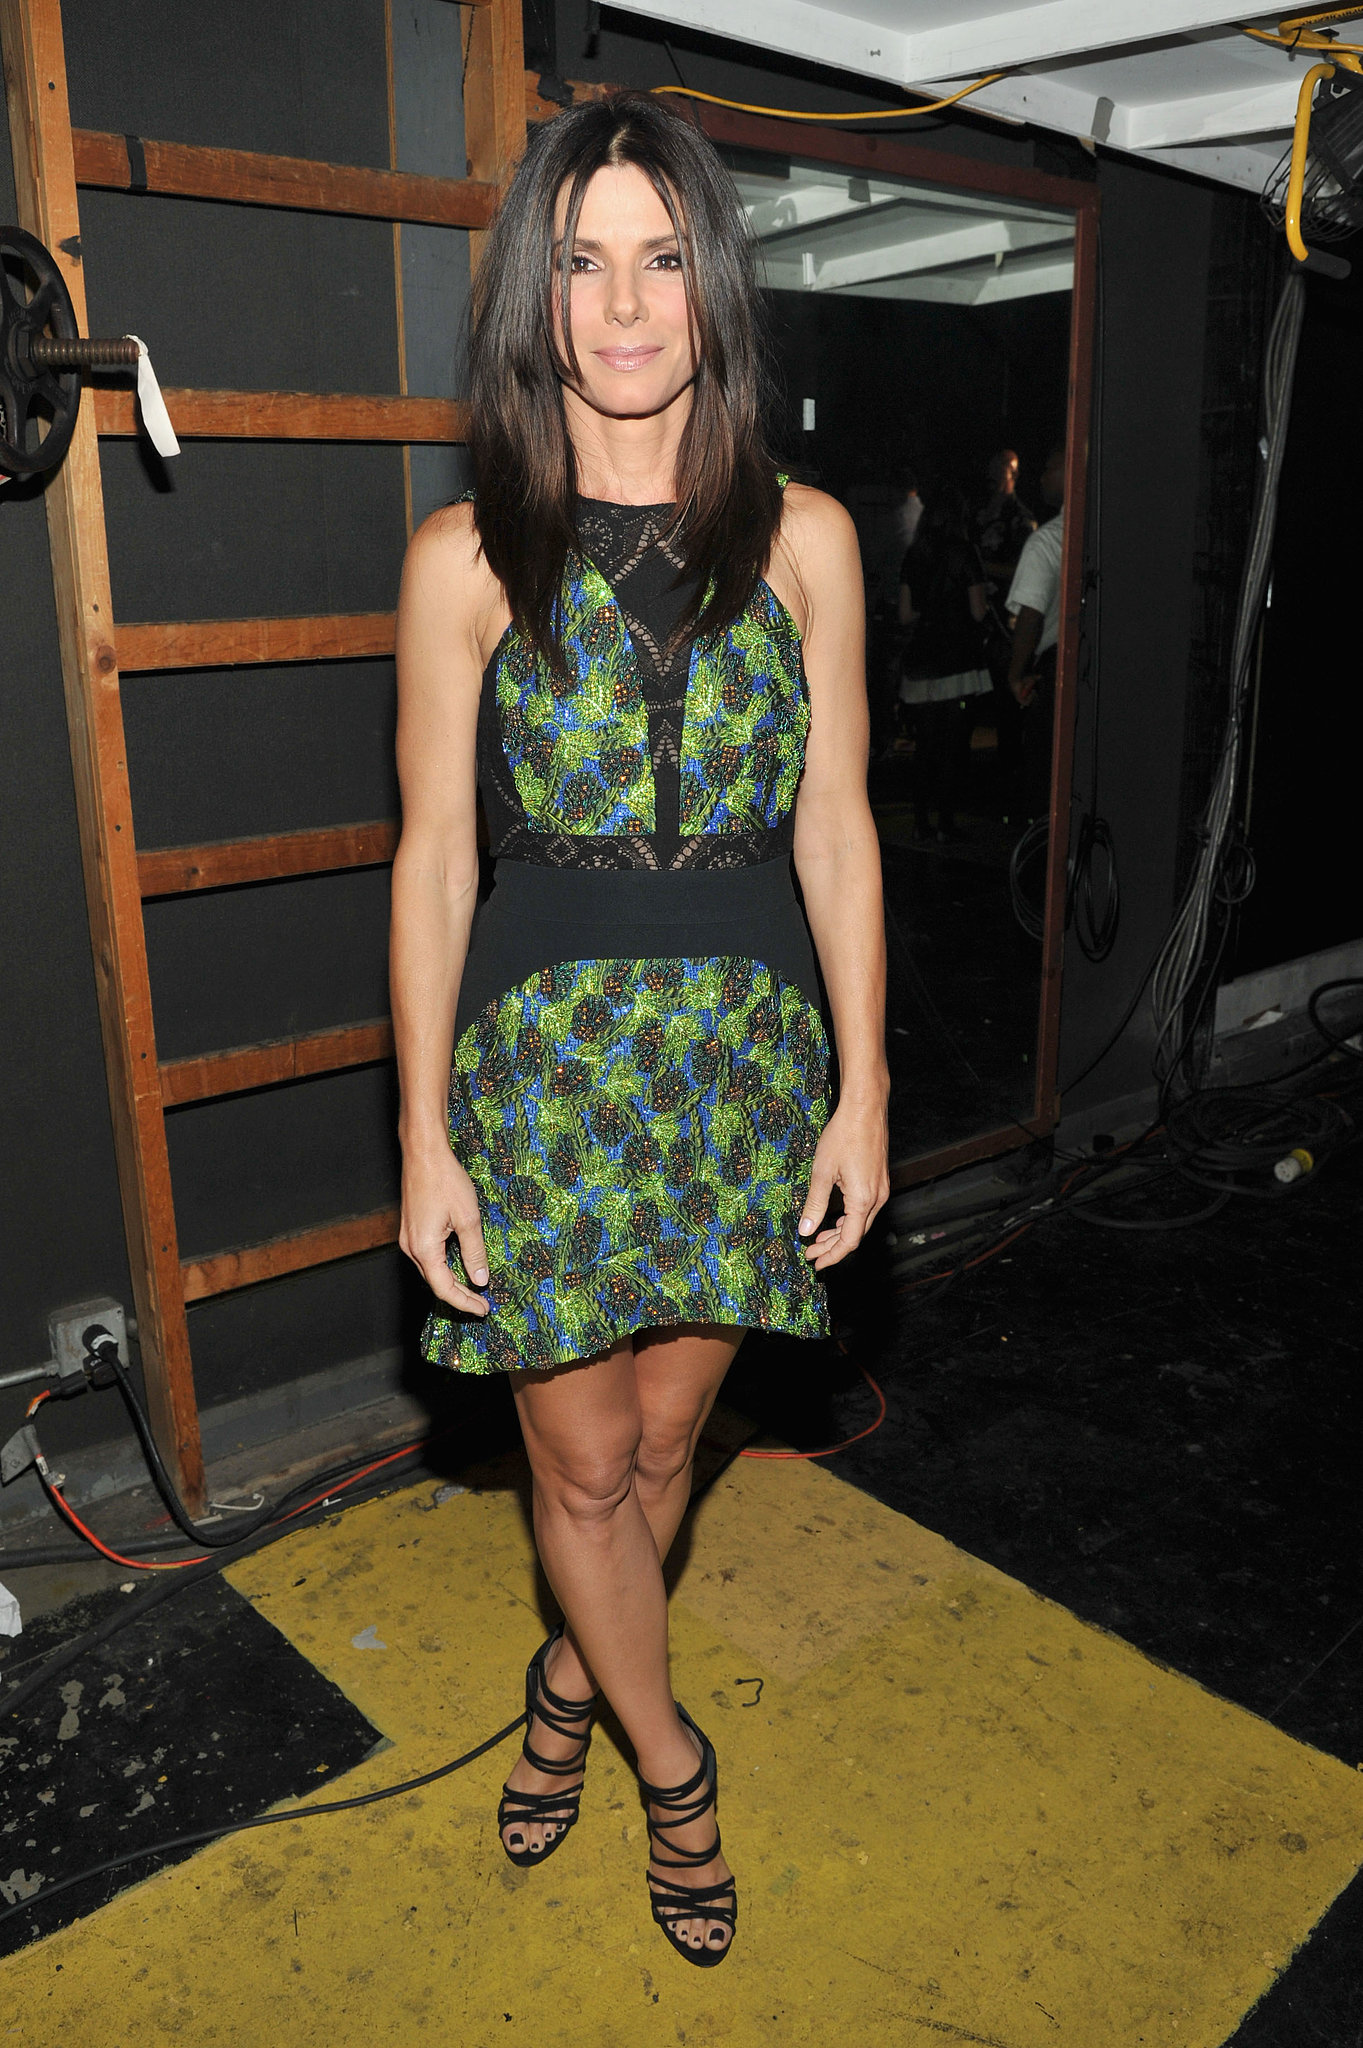 Sandra Bullock stepped backstage during the Teen Choice show in a contoured Antonio Berardi minidress and strappy Casadei sandals.